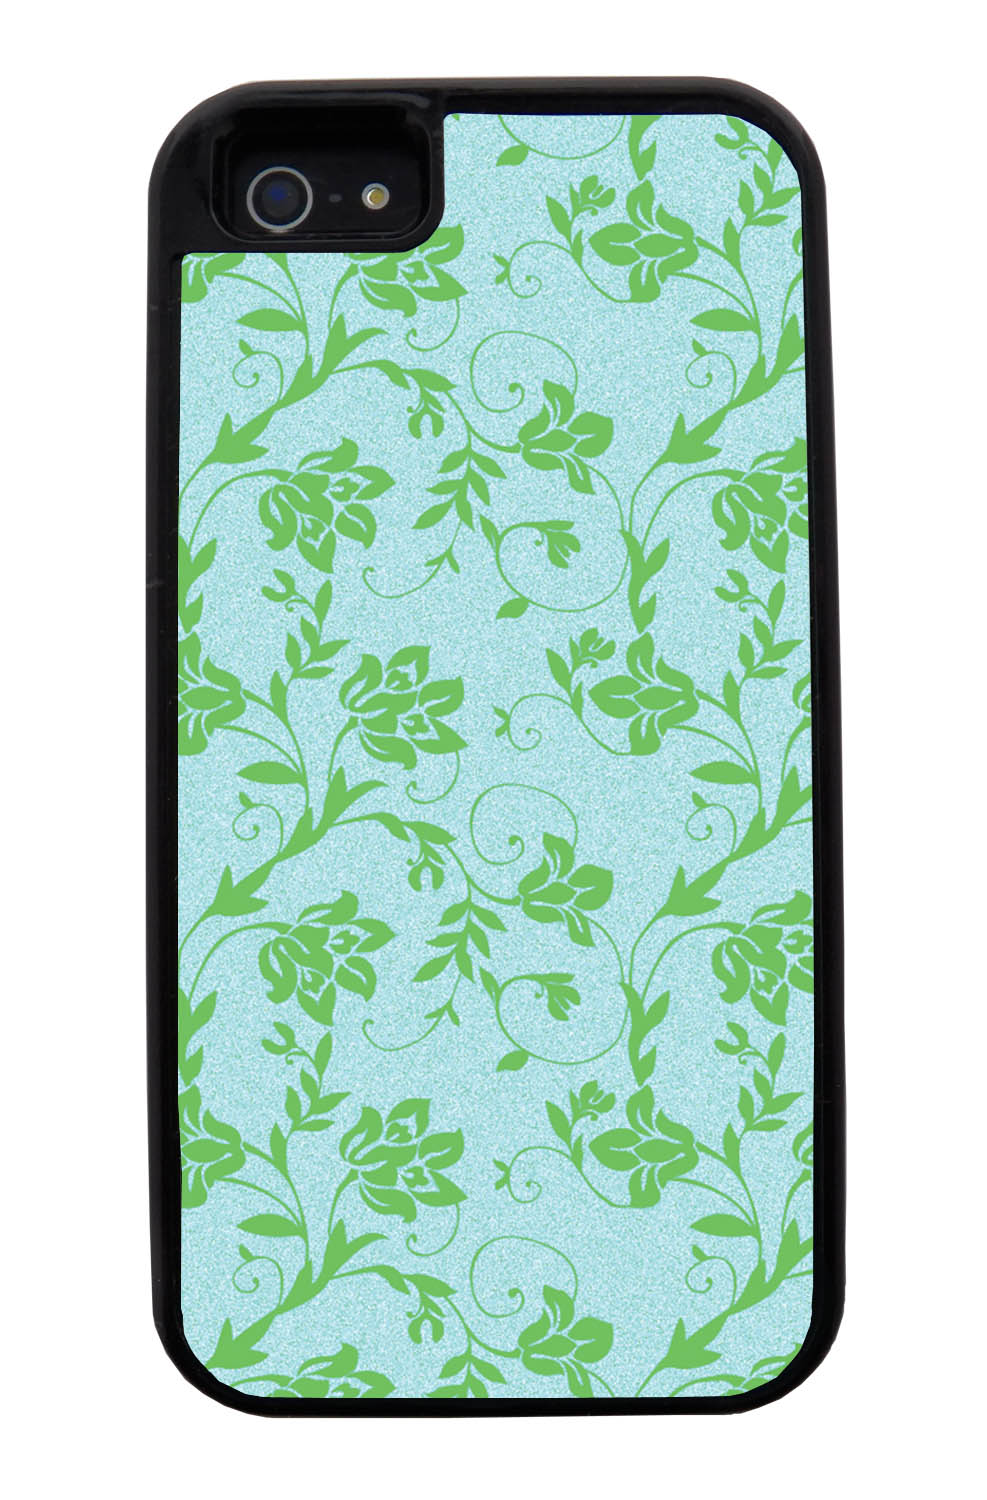 Apple iPhone 5 / 5S Flower Case - Green on Textured Light Blue - Stencil Cutout - Black Tough Hybrid Case